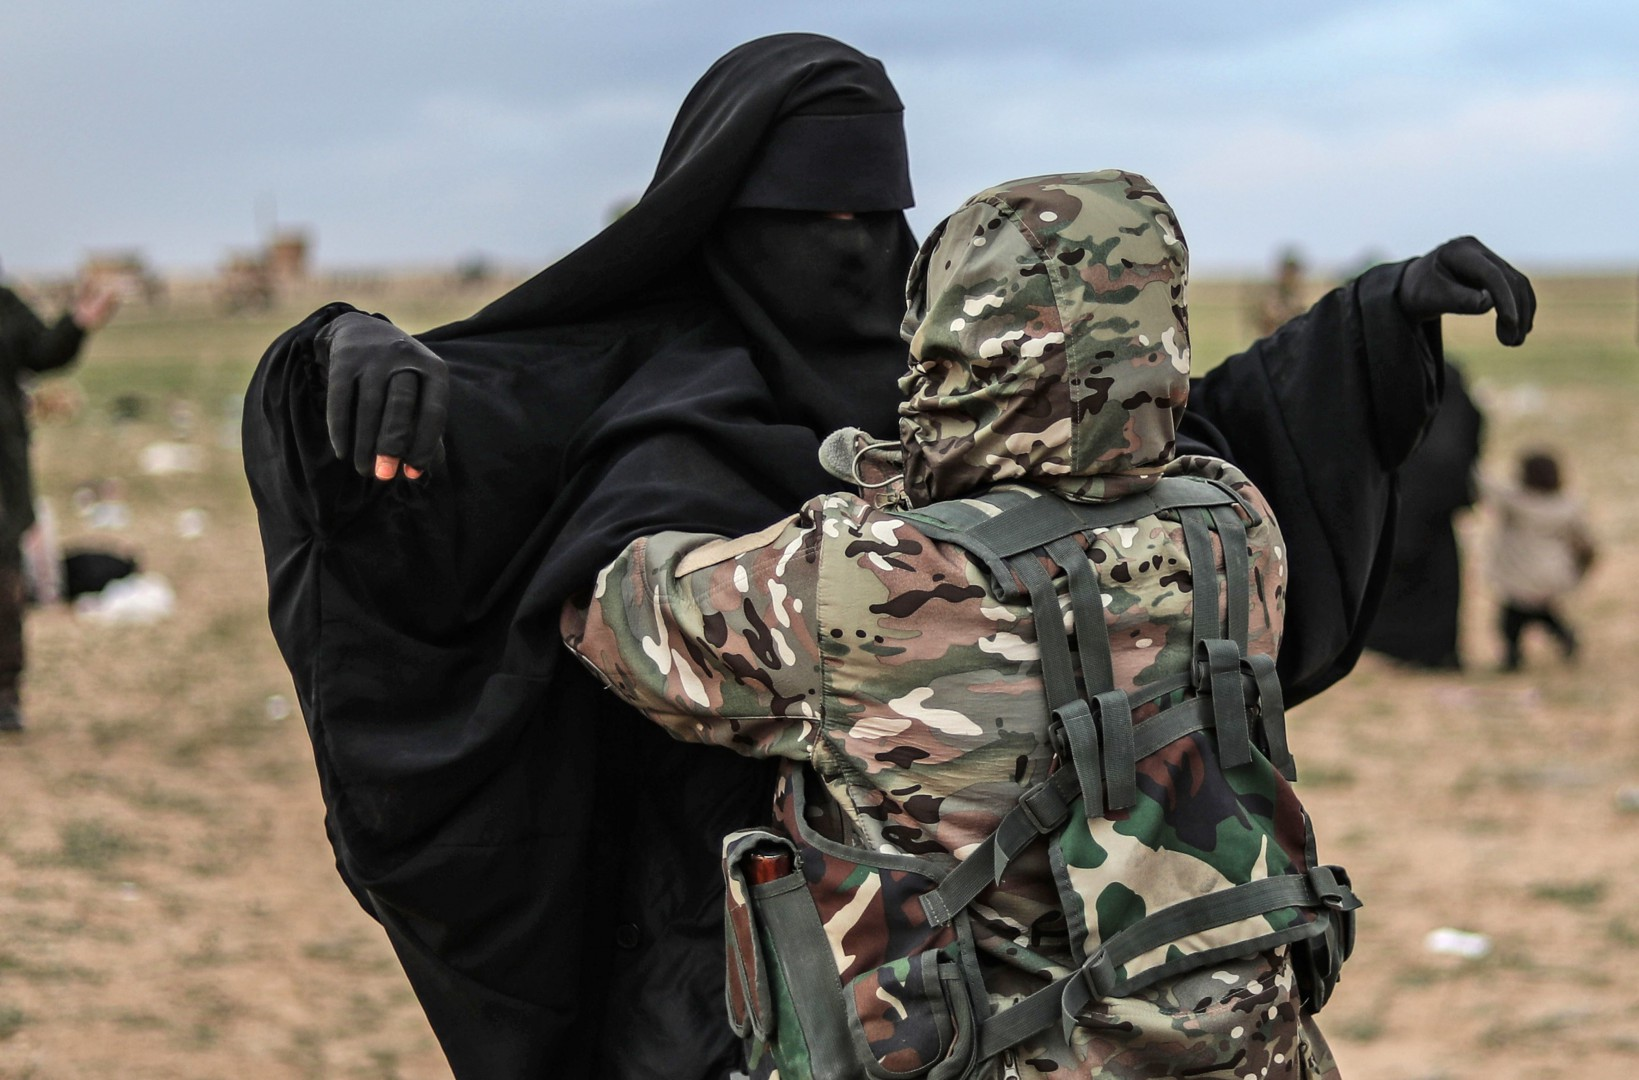 """Civilians evacuated from the Islamic State (IS) group's embattled holdout of Baghouz are searched by the US-backed Kurdish-led Syrian Democratic Forces (SDF) at a screening area, in the eastern Syrian province of Deir Ezzor, on February 27, 2019. - US-backed forces in eastern Syria screened and treated truckloads of suspected jihadists and relatives who left a village where the Islamic State group's """"caliphate"""" is making its last stand. The Kurdish-led SDF struggled to cope with the flow of people exiting the very last shred of a once-sprawling proto-state that claimed dominion over millions of people. (Photo by Delil SOULEIMAN / AFP)"""